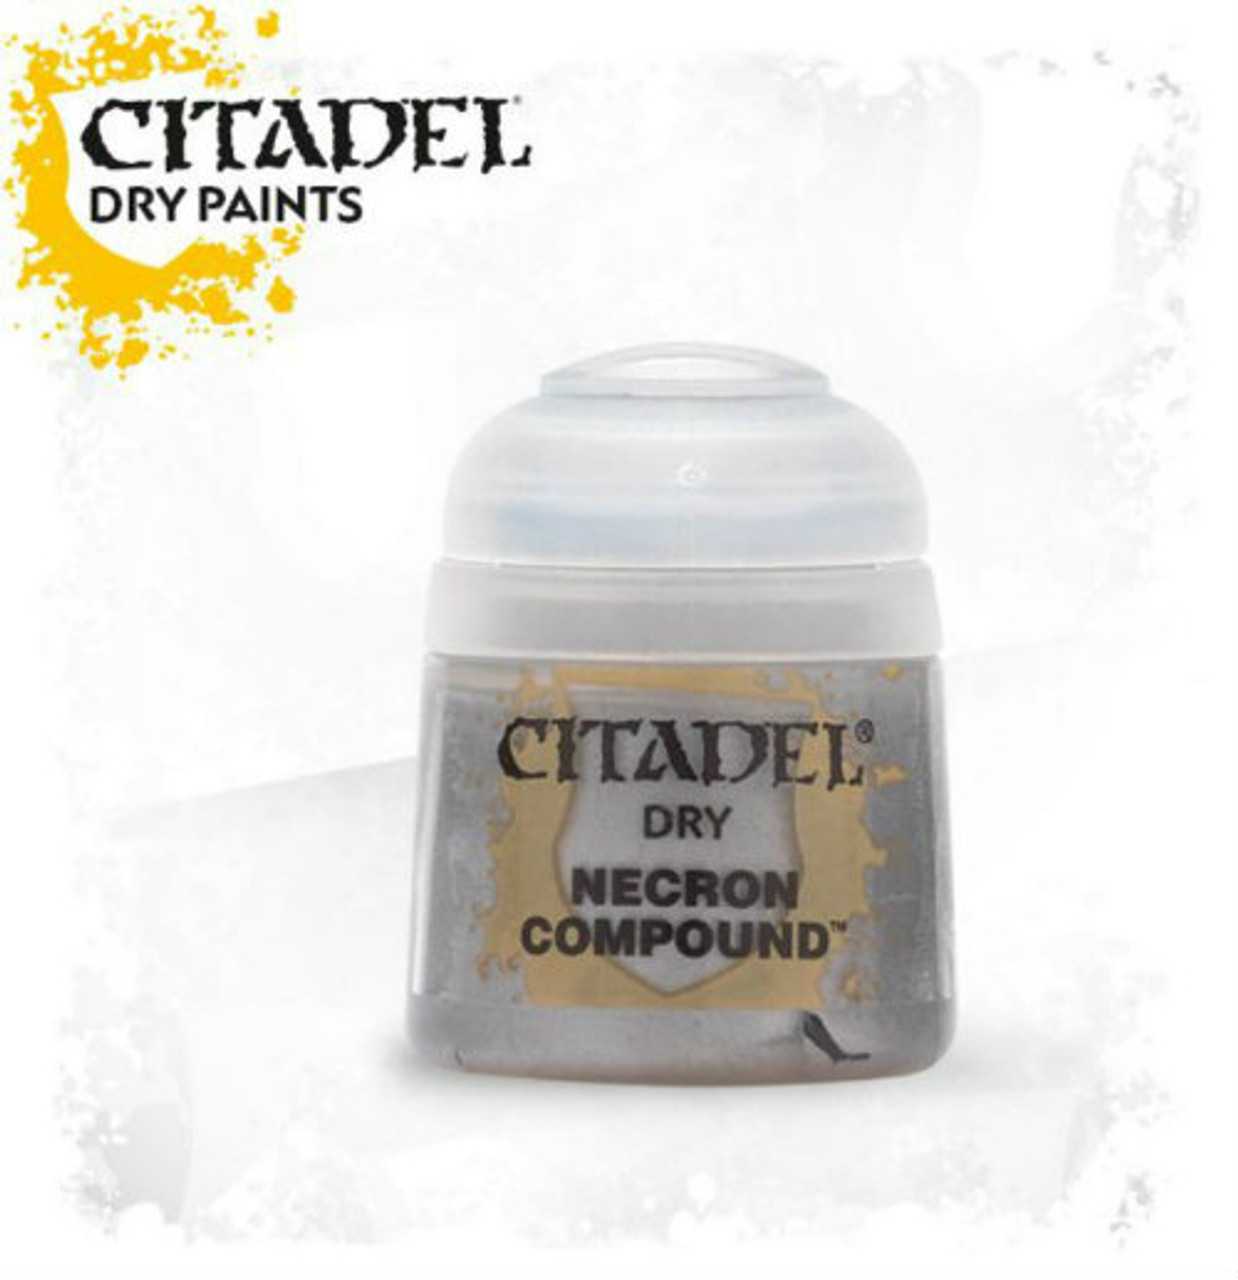 Citadel: Dry Paint - Necron Compound (12ml)